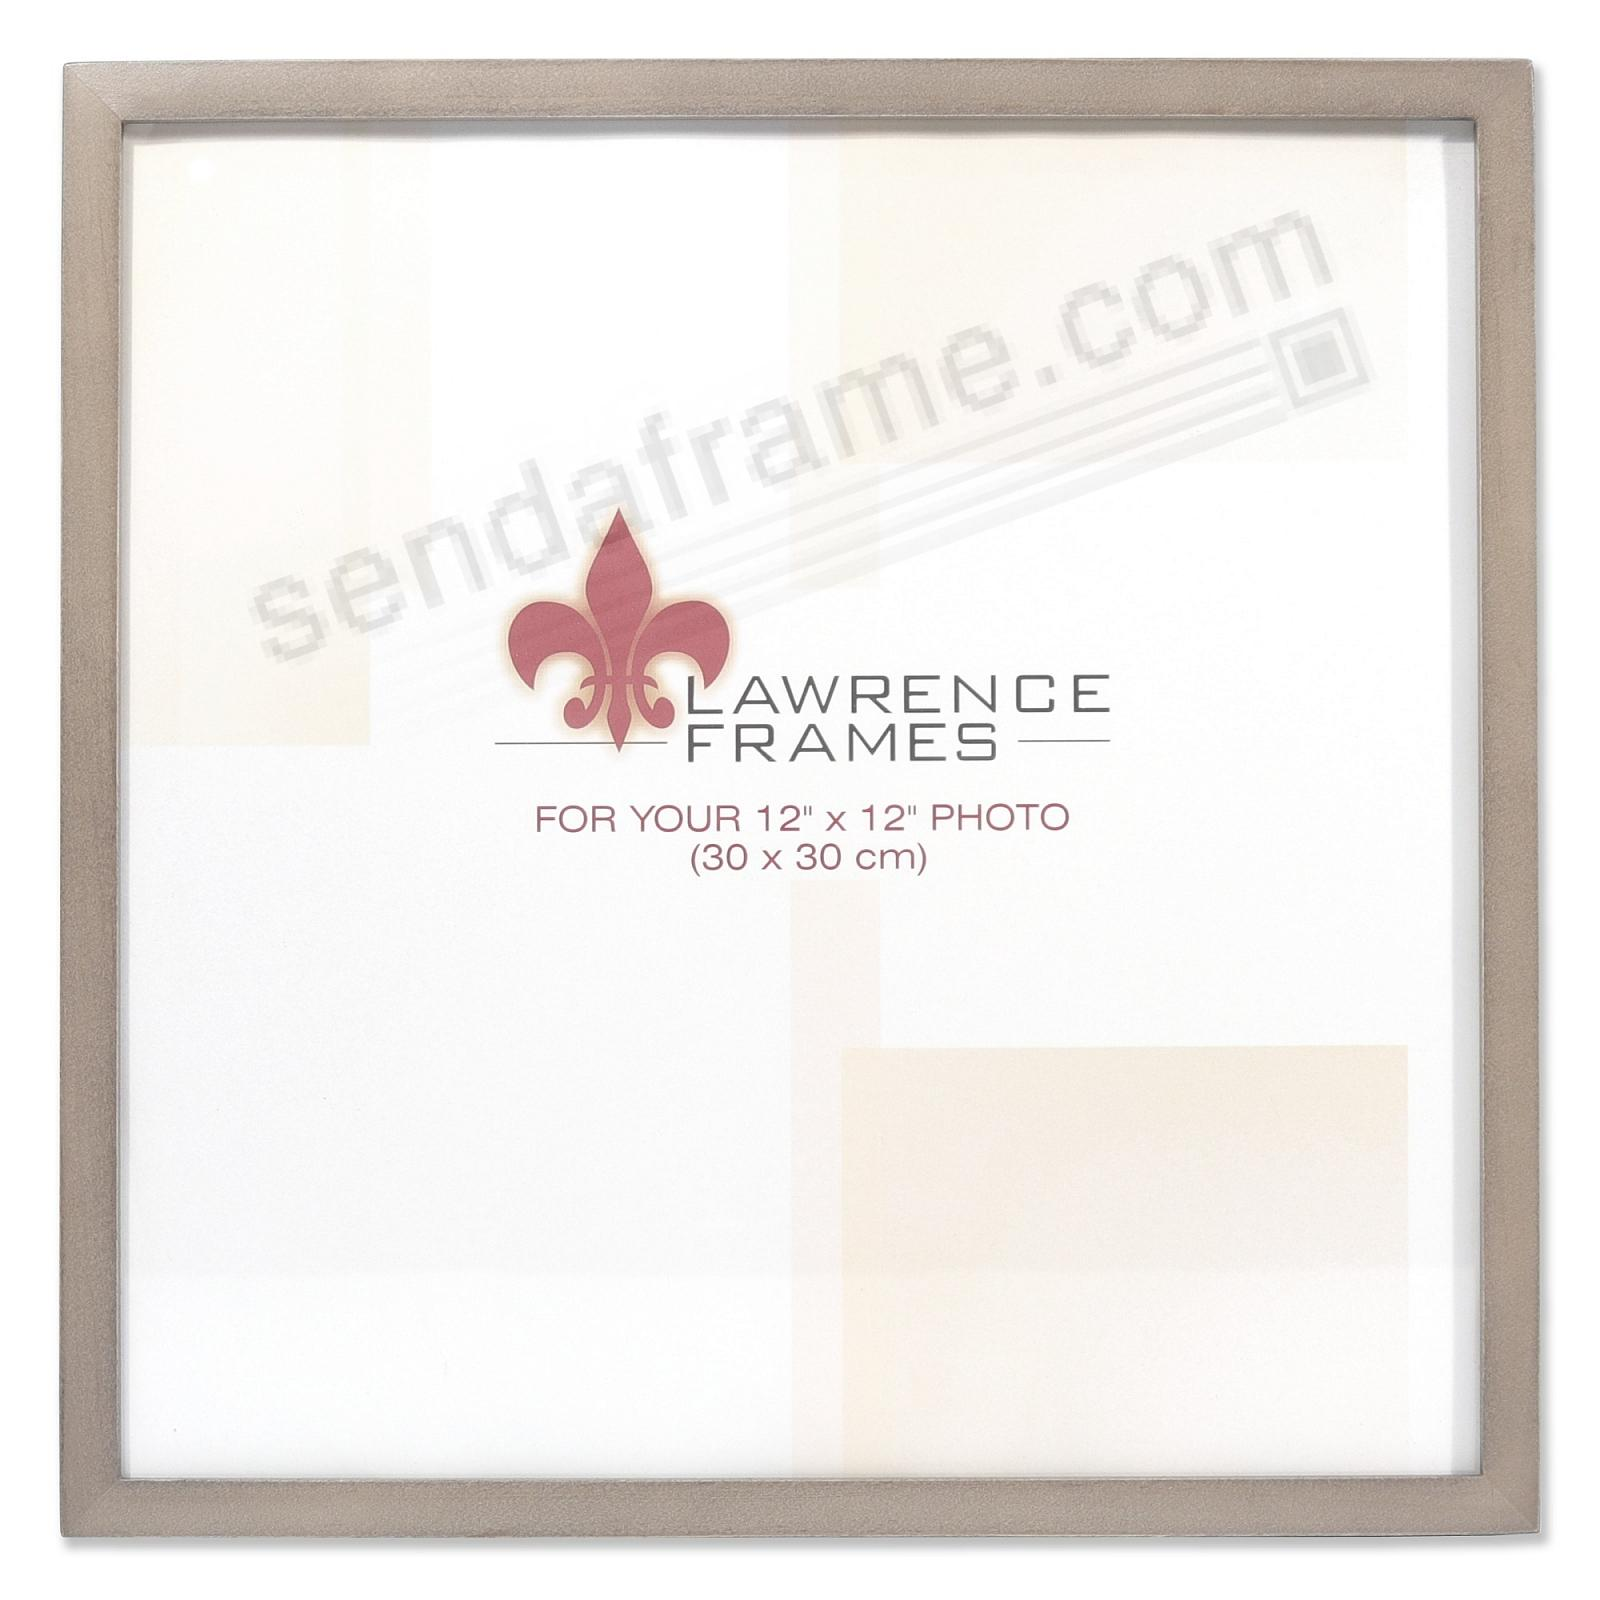 SQUARE CORNER Gray Stain 12x12 frame by Lawrence Frames®